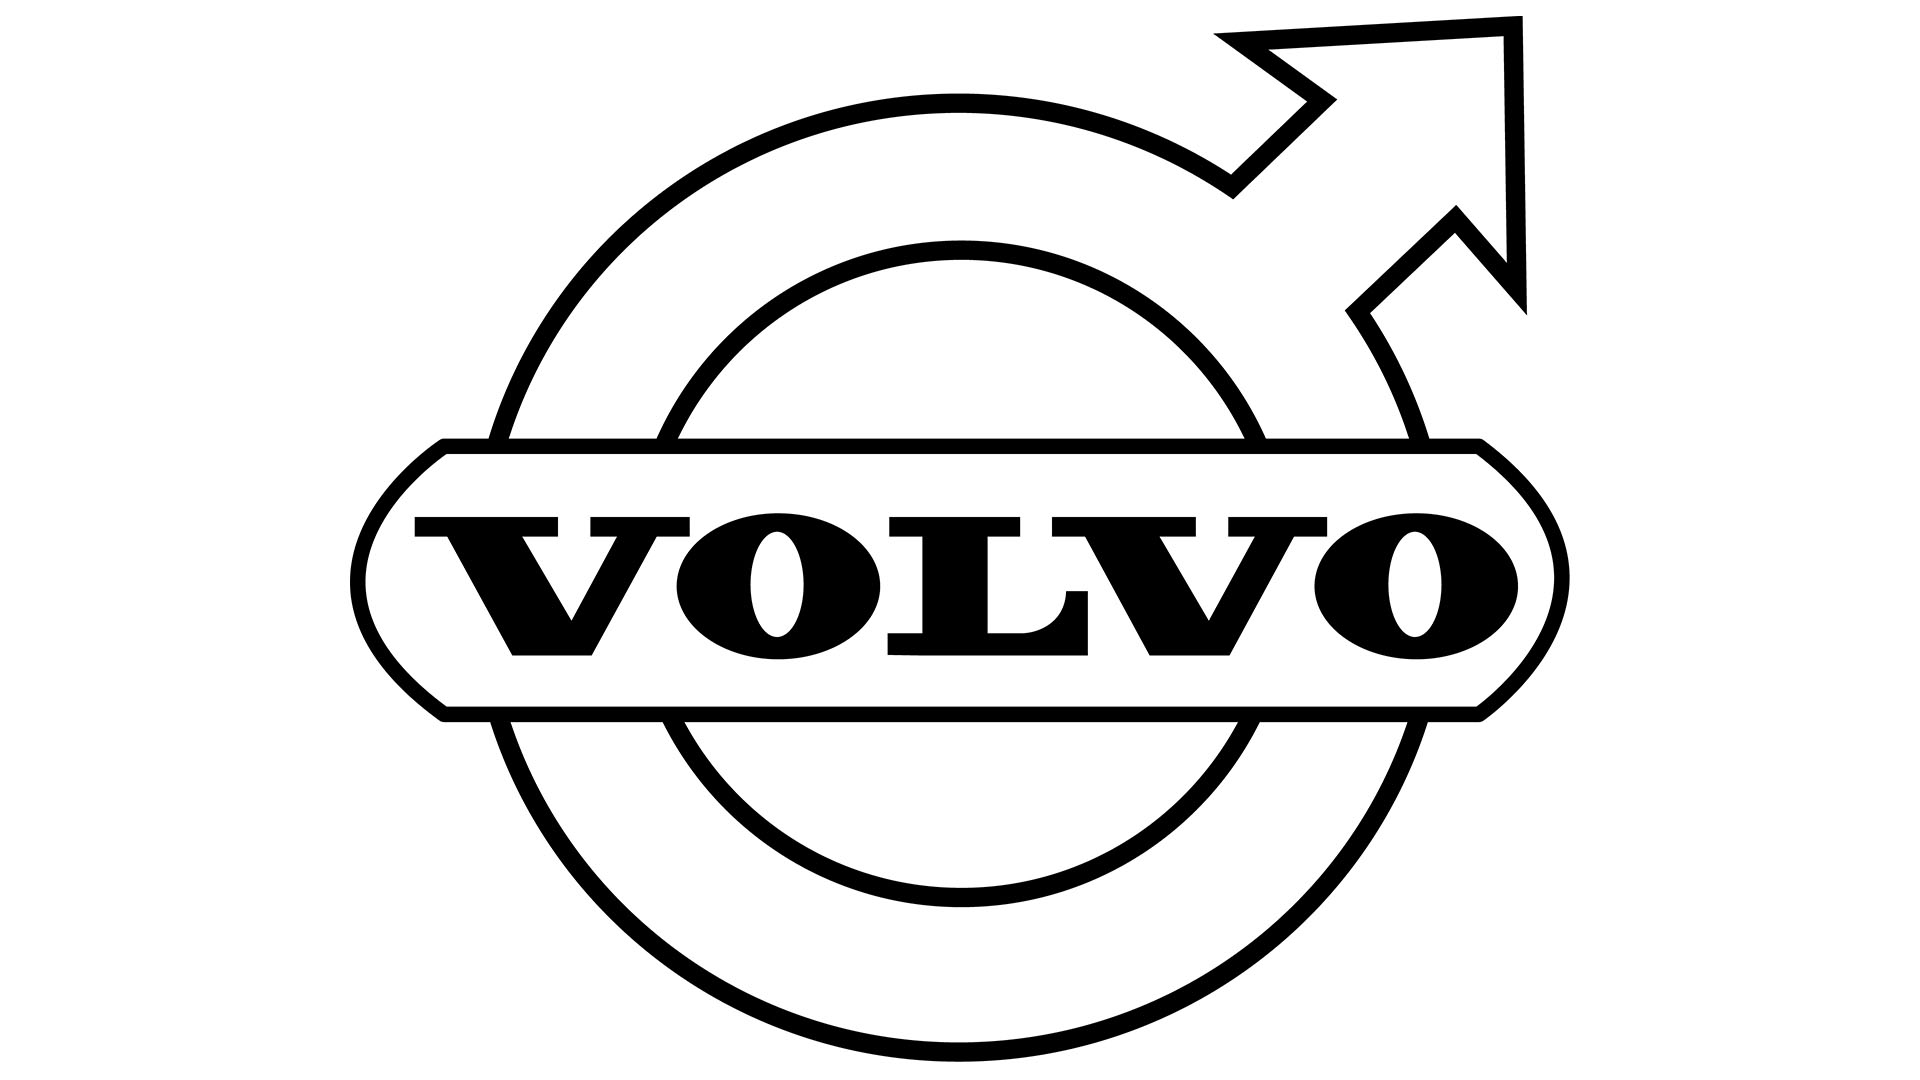 Volvo Logo Meaning And History Volvo Symbol